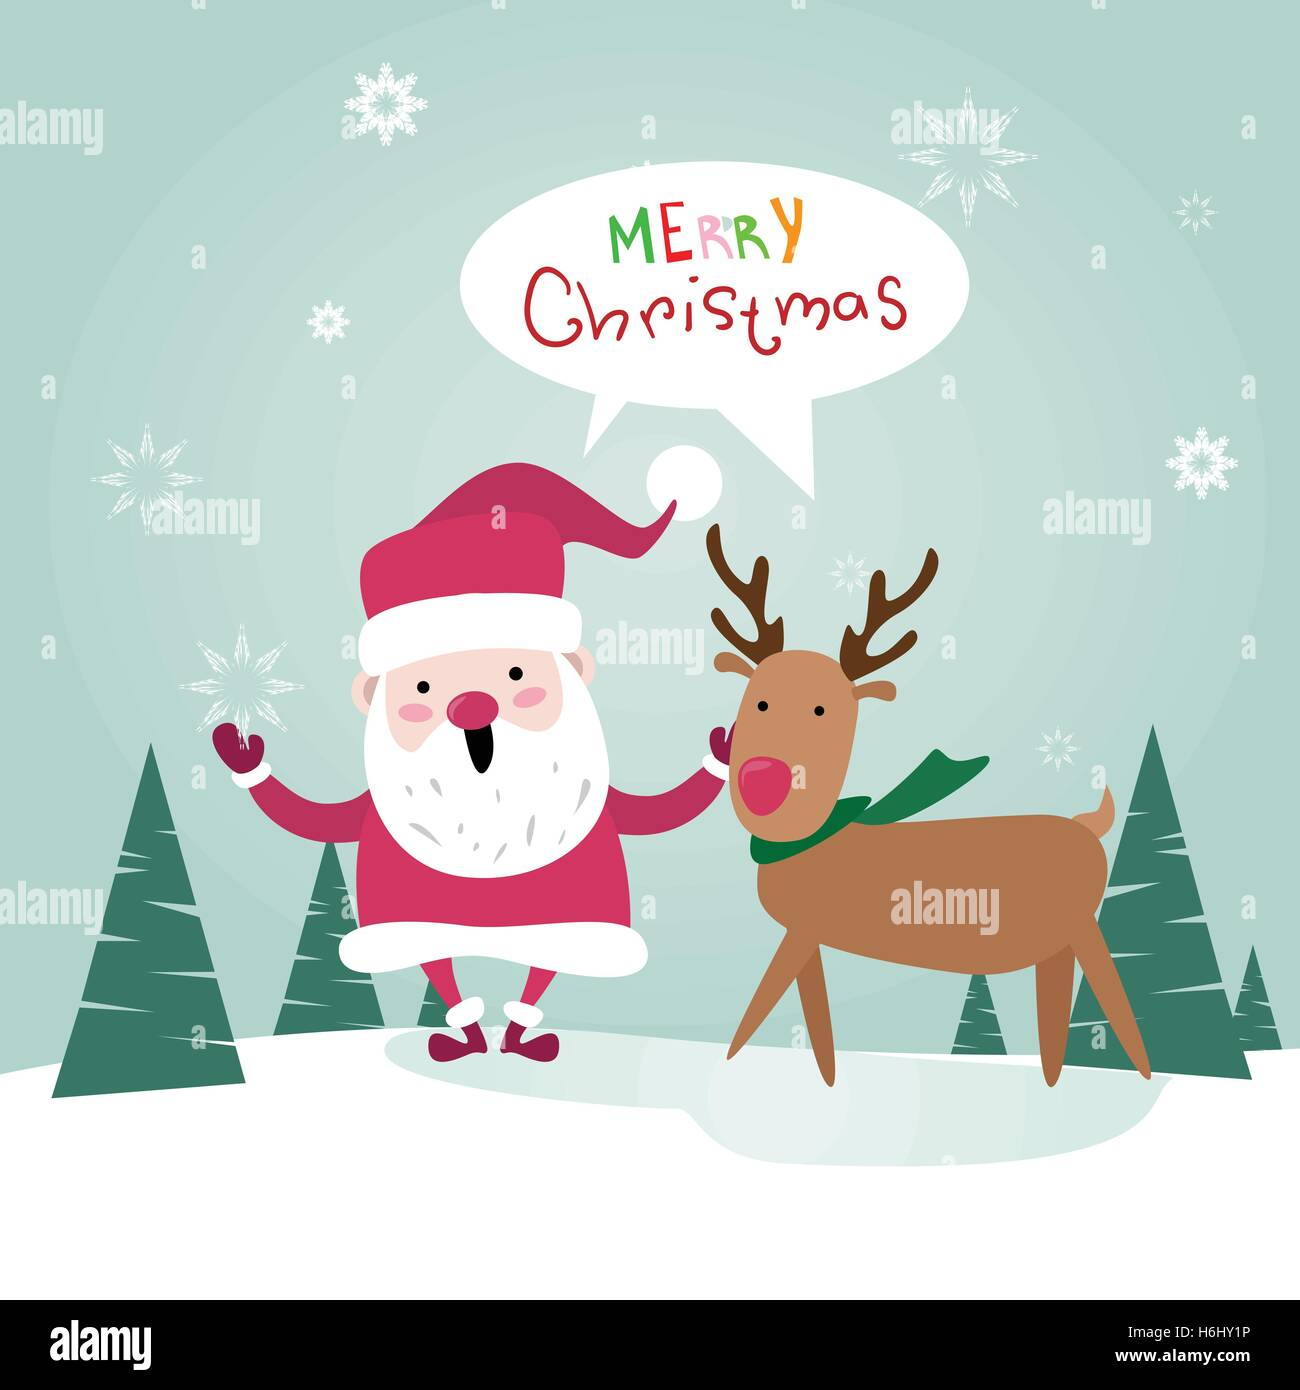 Merry Christmas Santa Clause With Reindeer Happy New Year Poster Greeting Card Flat Vector Illustration - Stock Image